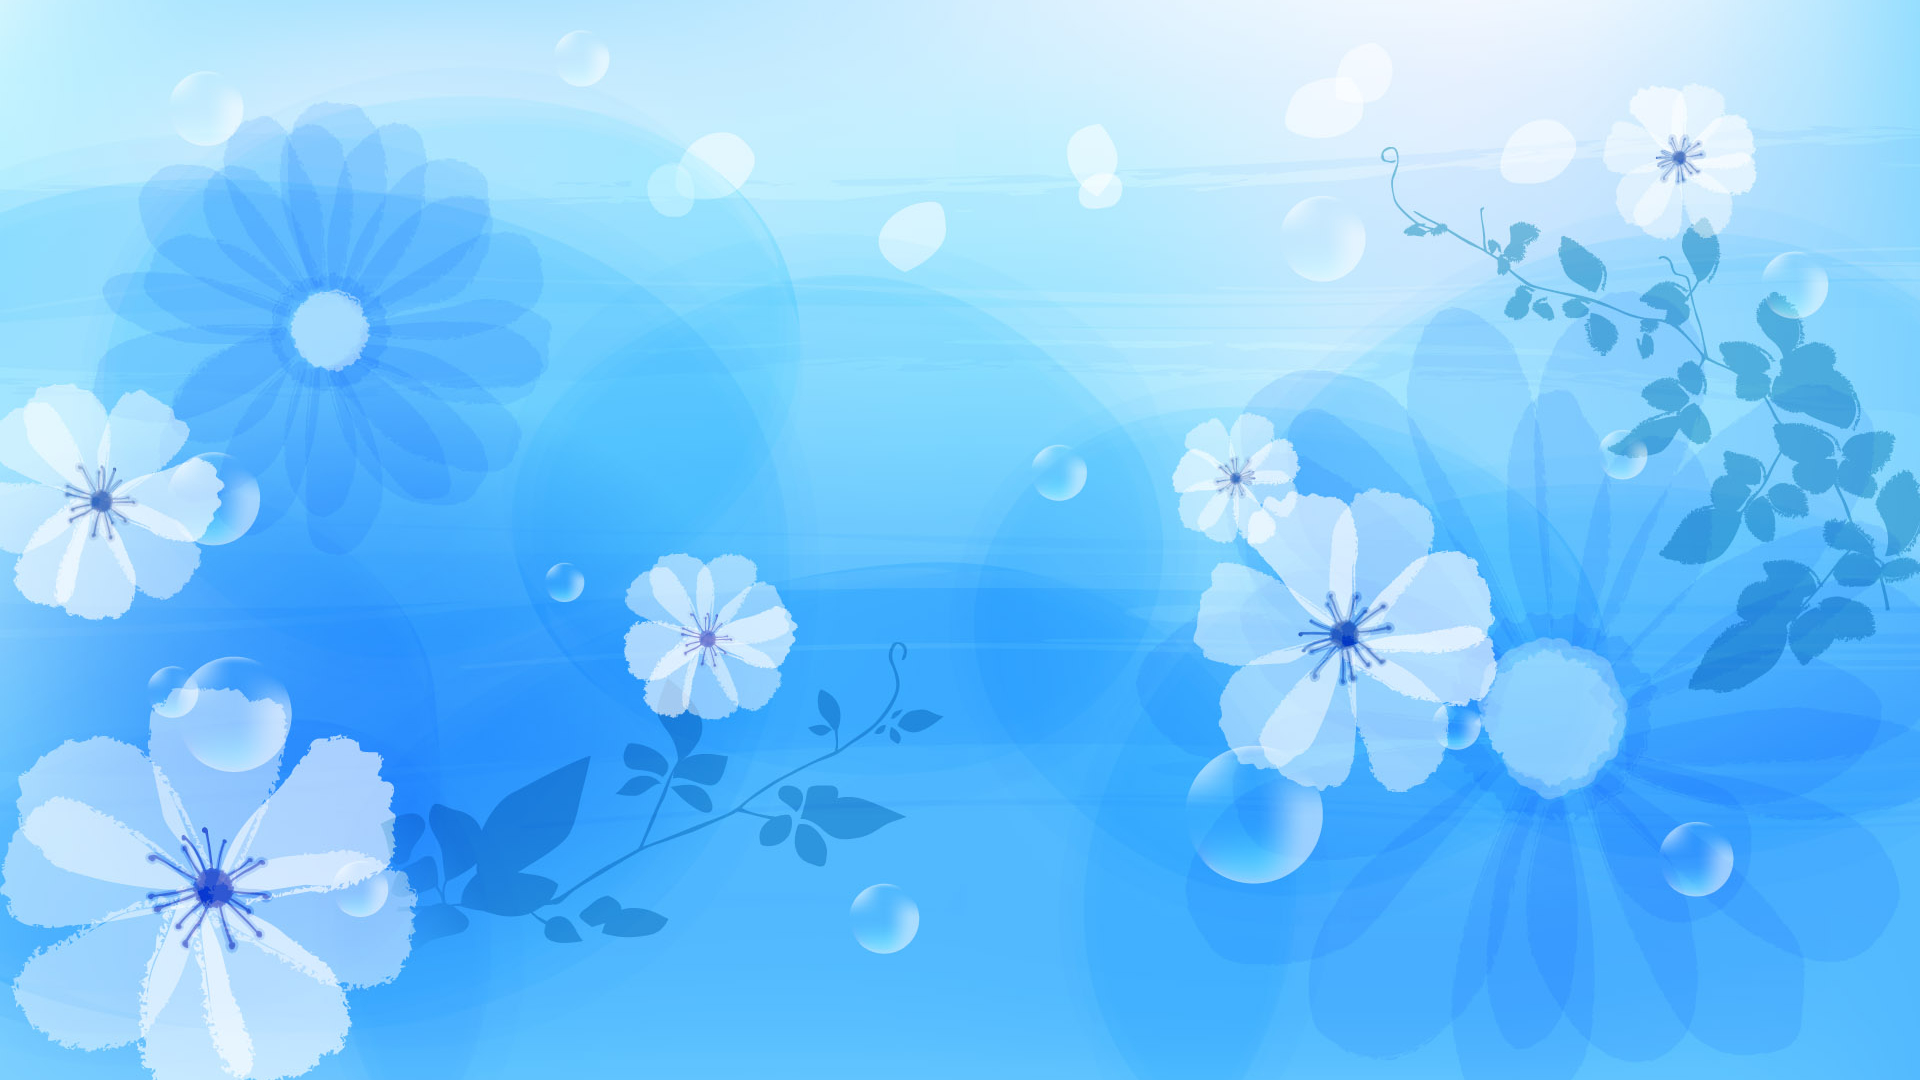 Free Download Abstract Flower Backgrounds 3964 Hd Wallpapers In